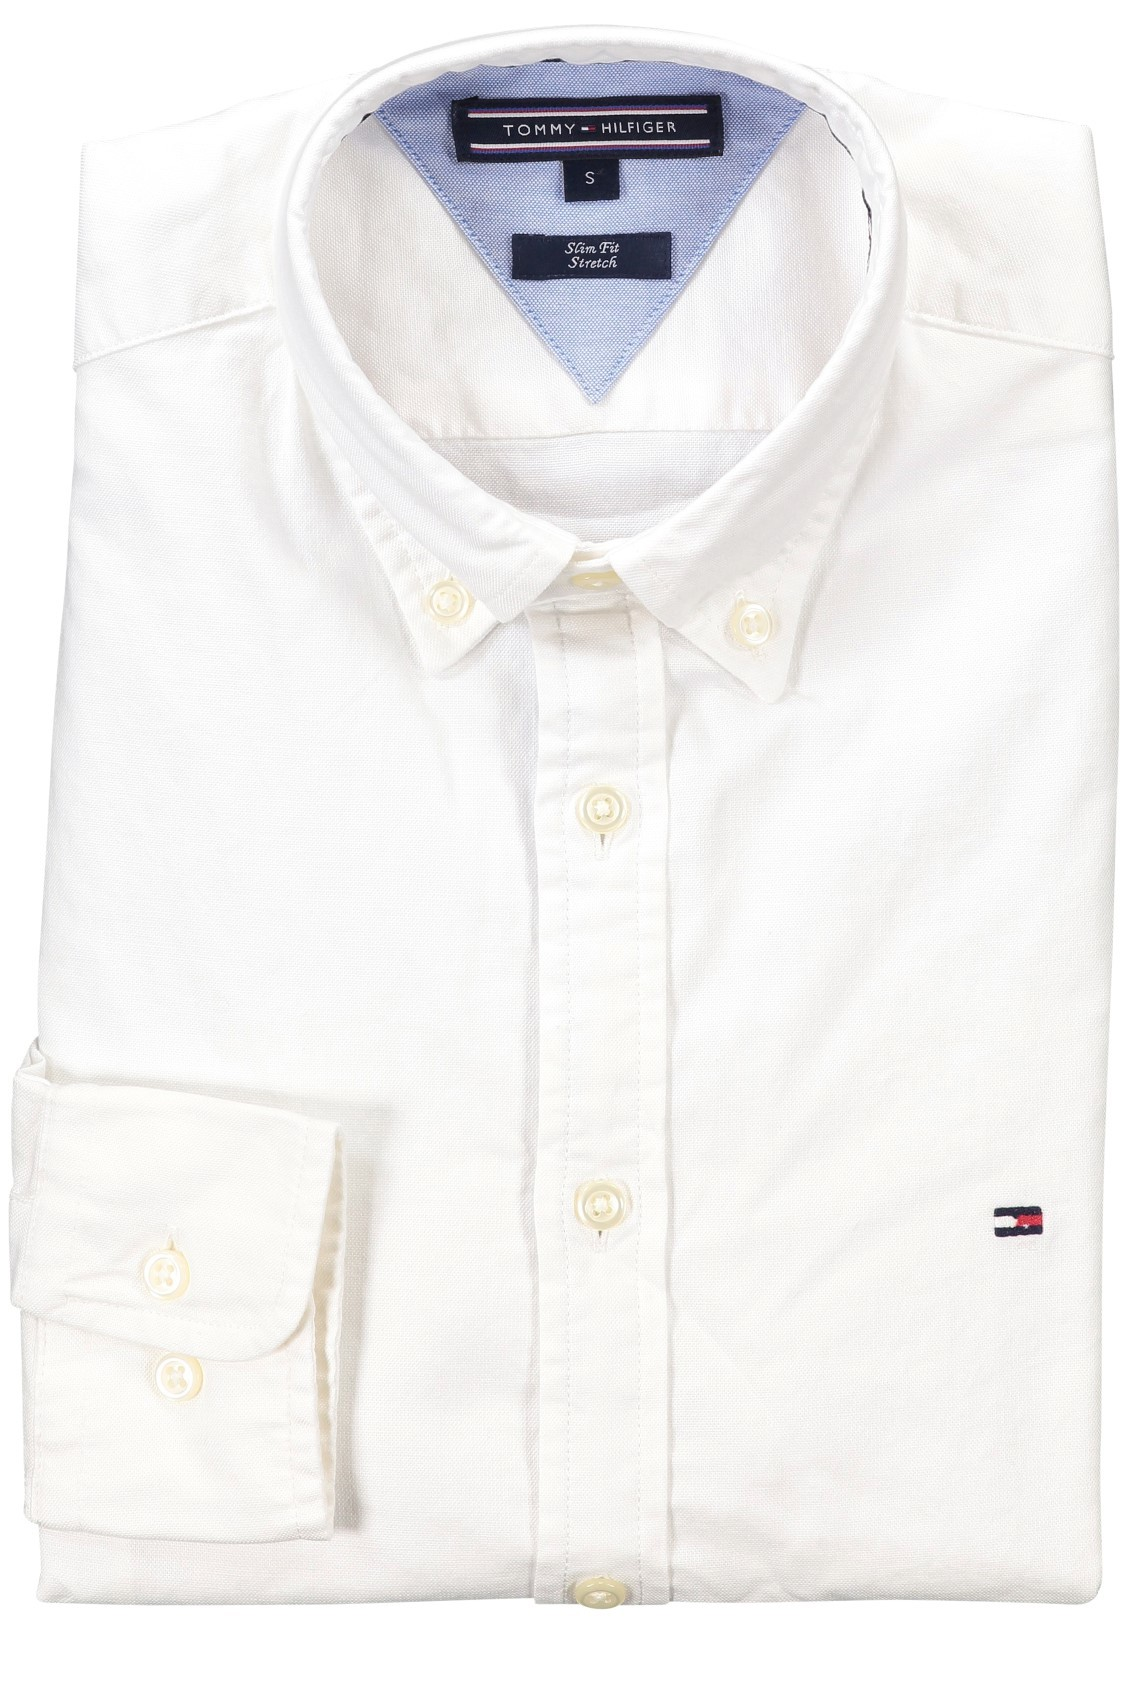 Tommy Hilfiger wit overhemd slim fit stretch